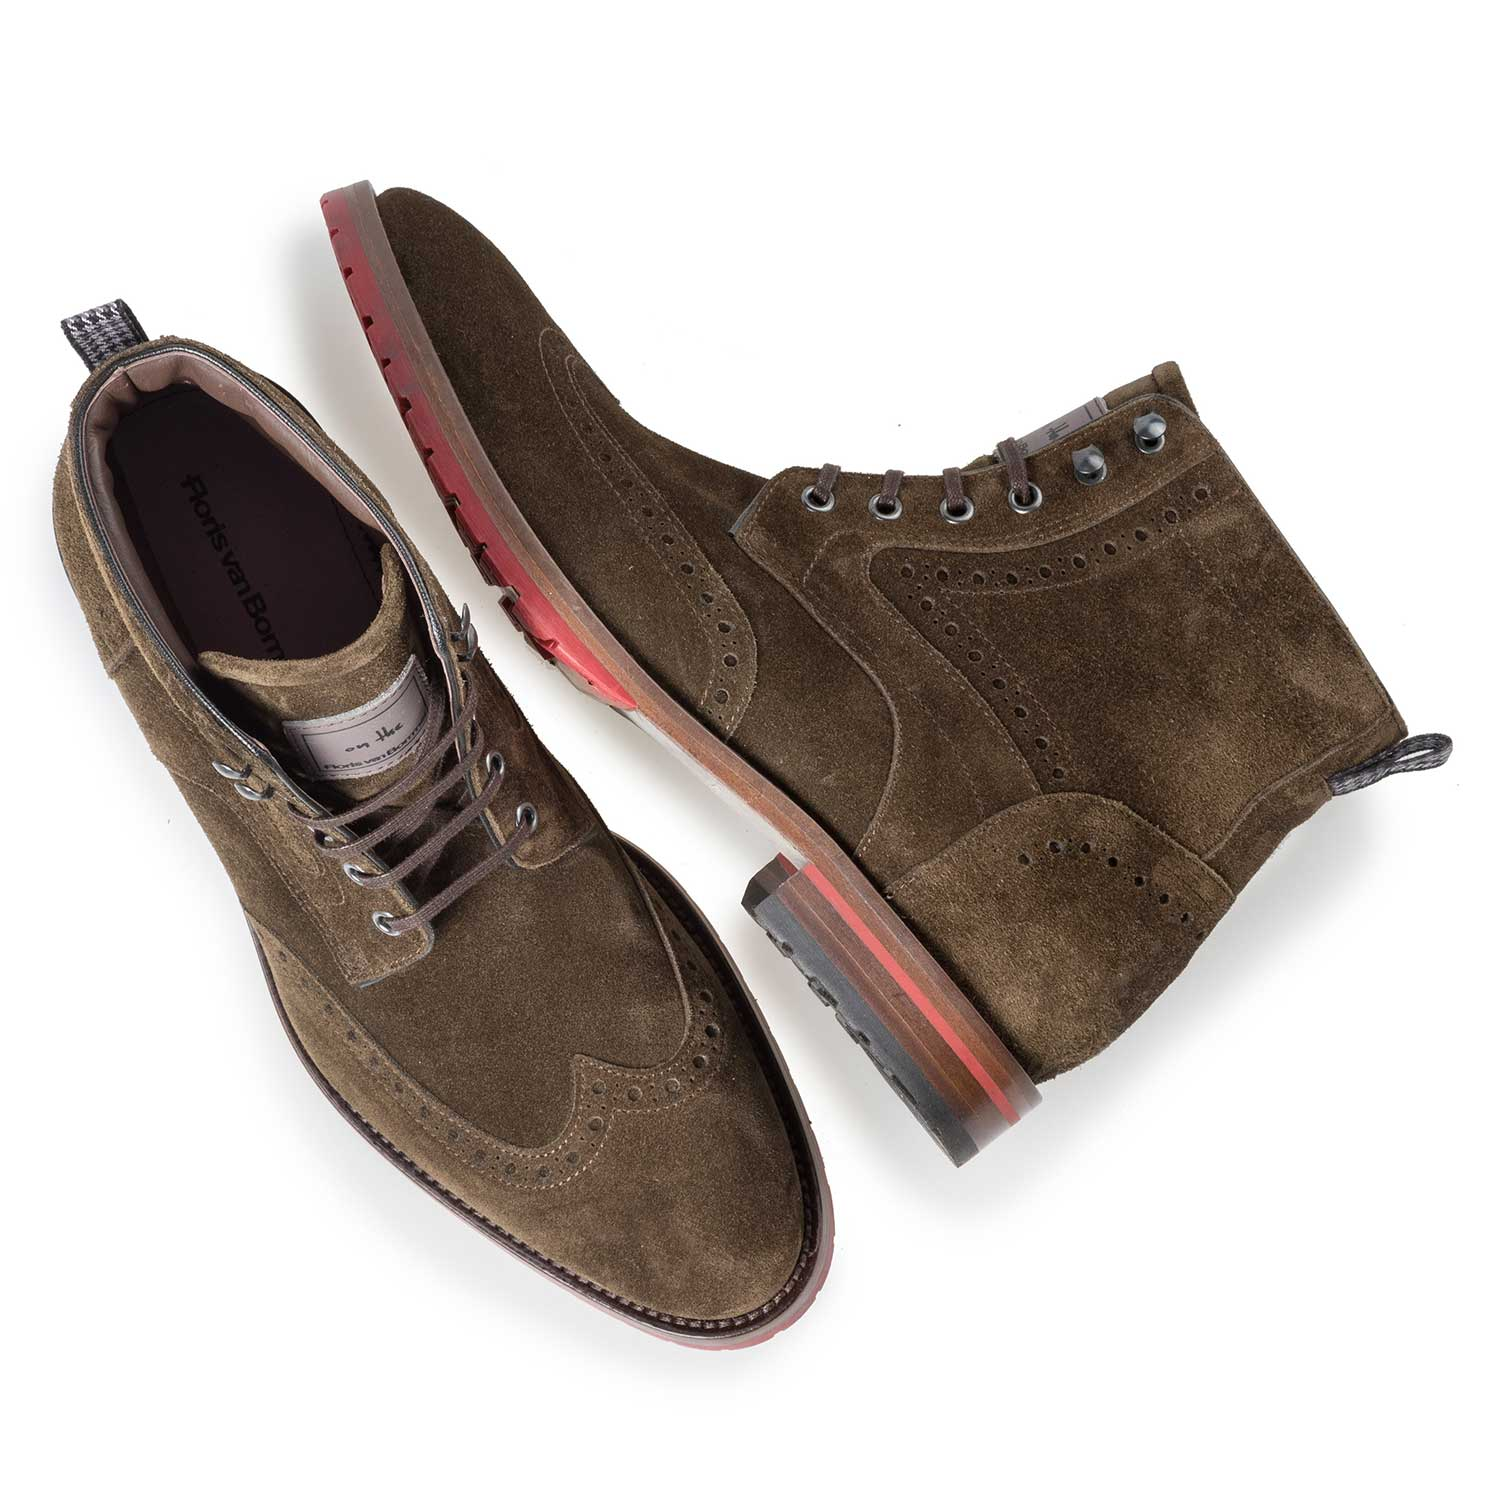 10295/05 - Brown/olive green calf suede leather brogue lace boot